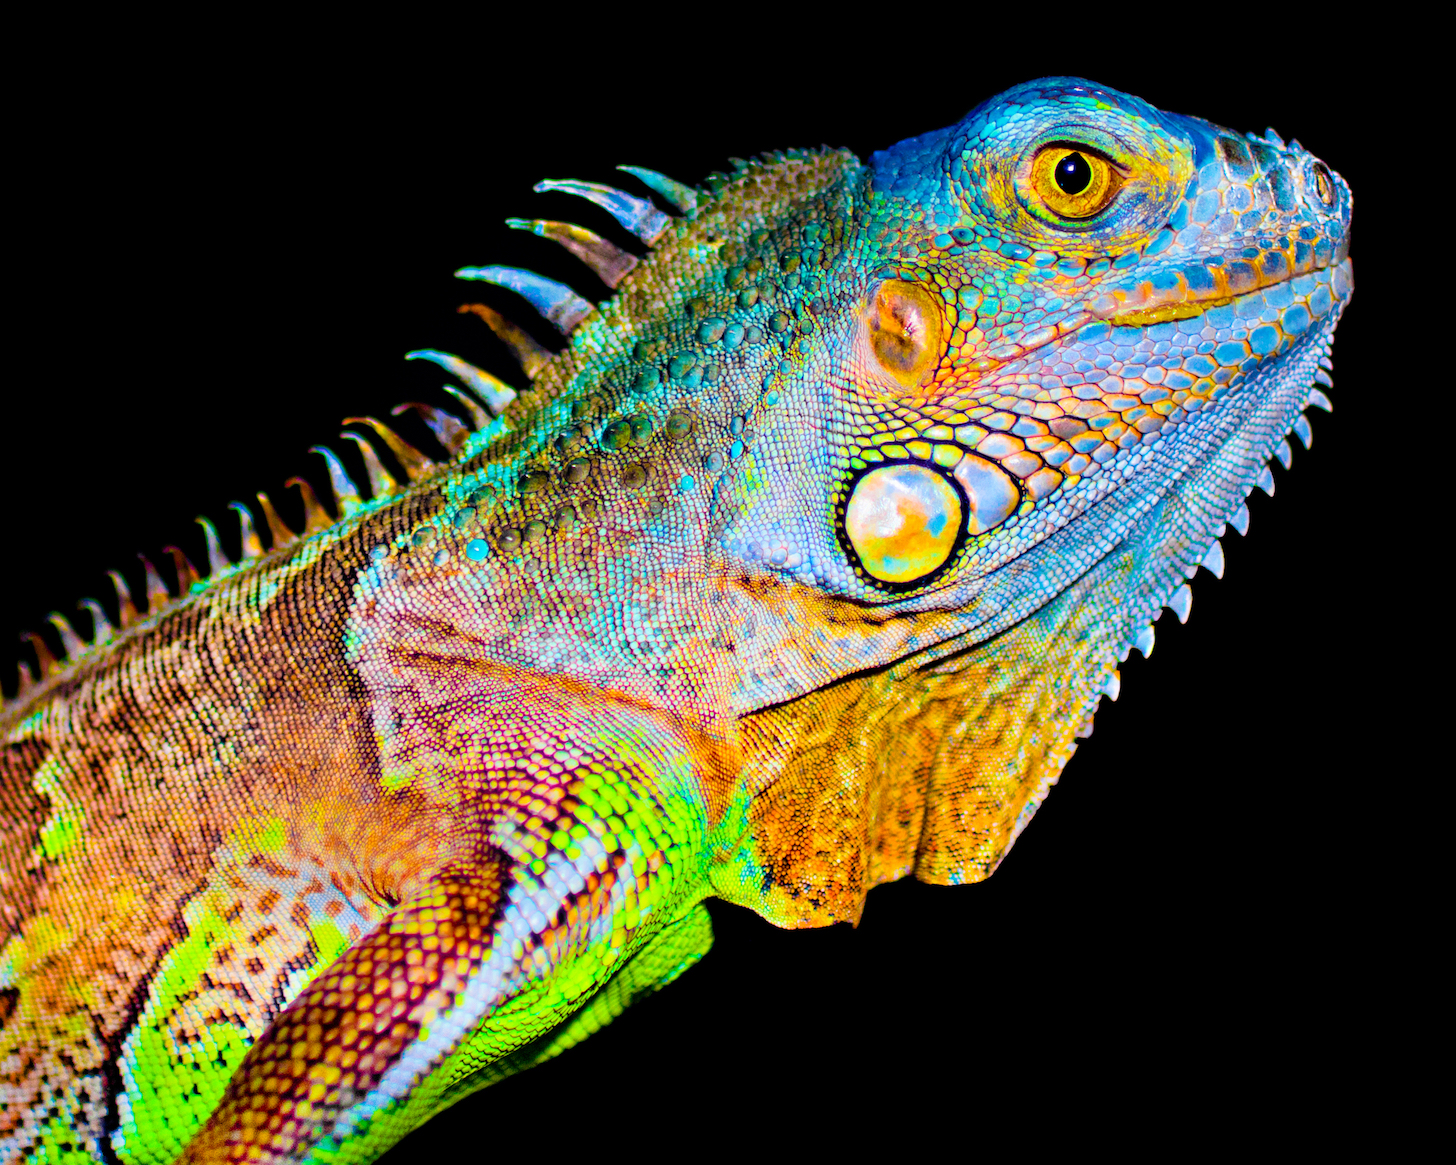 A new study finds that the ocellated lizard changes its skin color through interactions among pigment cells.